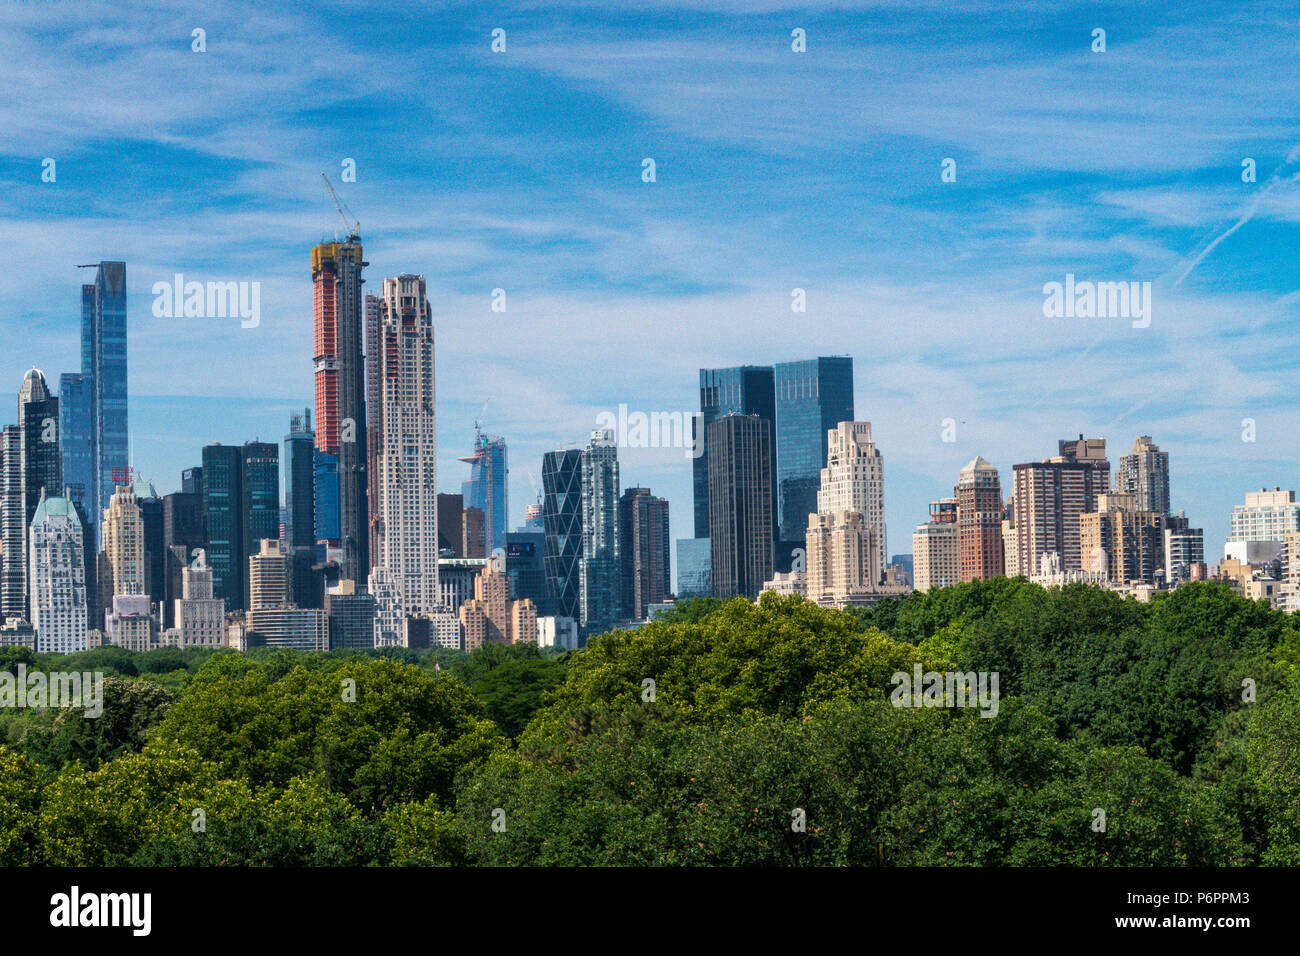 New York City Skyline Avec Central Park à l'avant-plan, NYC, USA Photo Stock